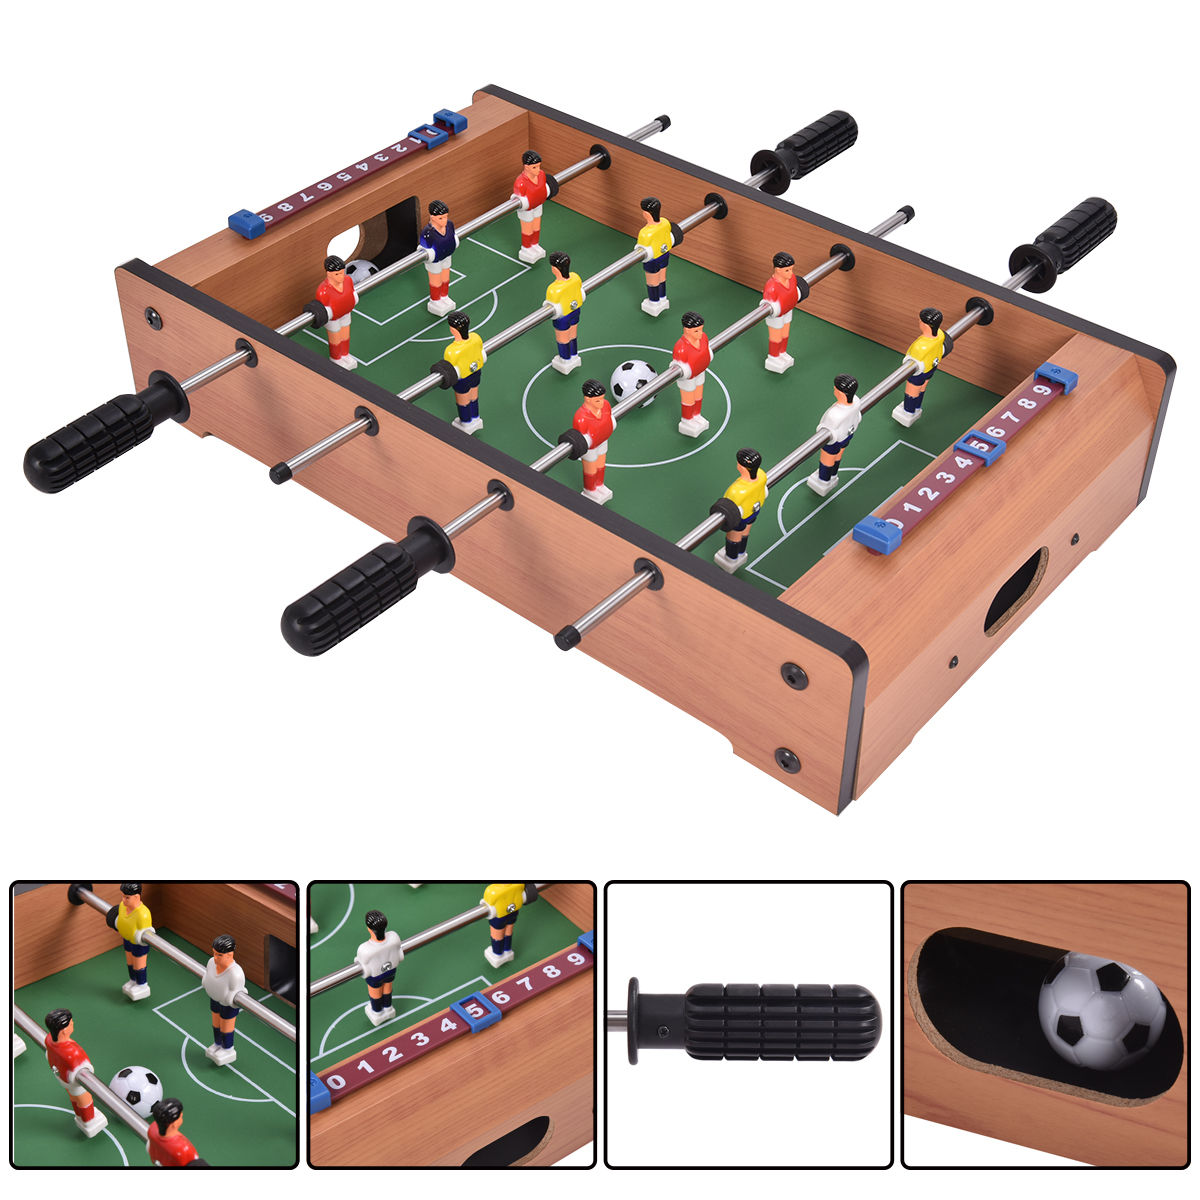 Costway 20'' Foosball Table Competition Game Soccer Arcade Sized Football Sports Indoor by Costway